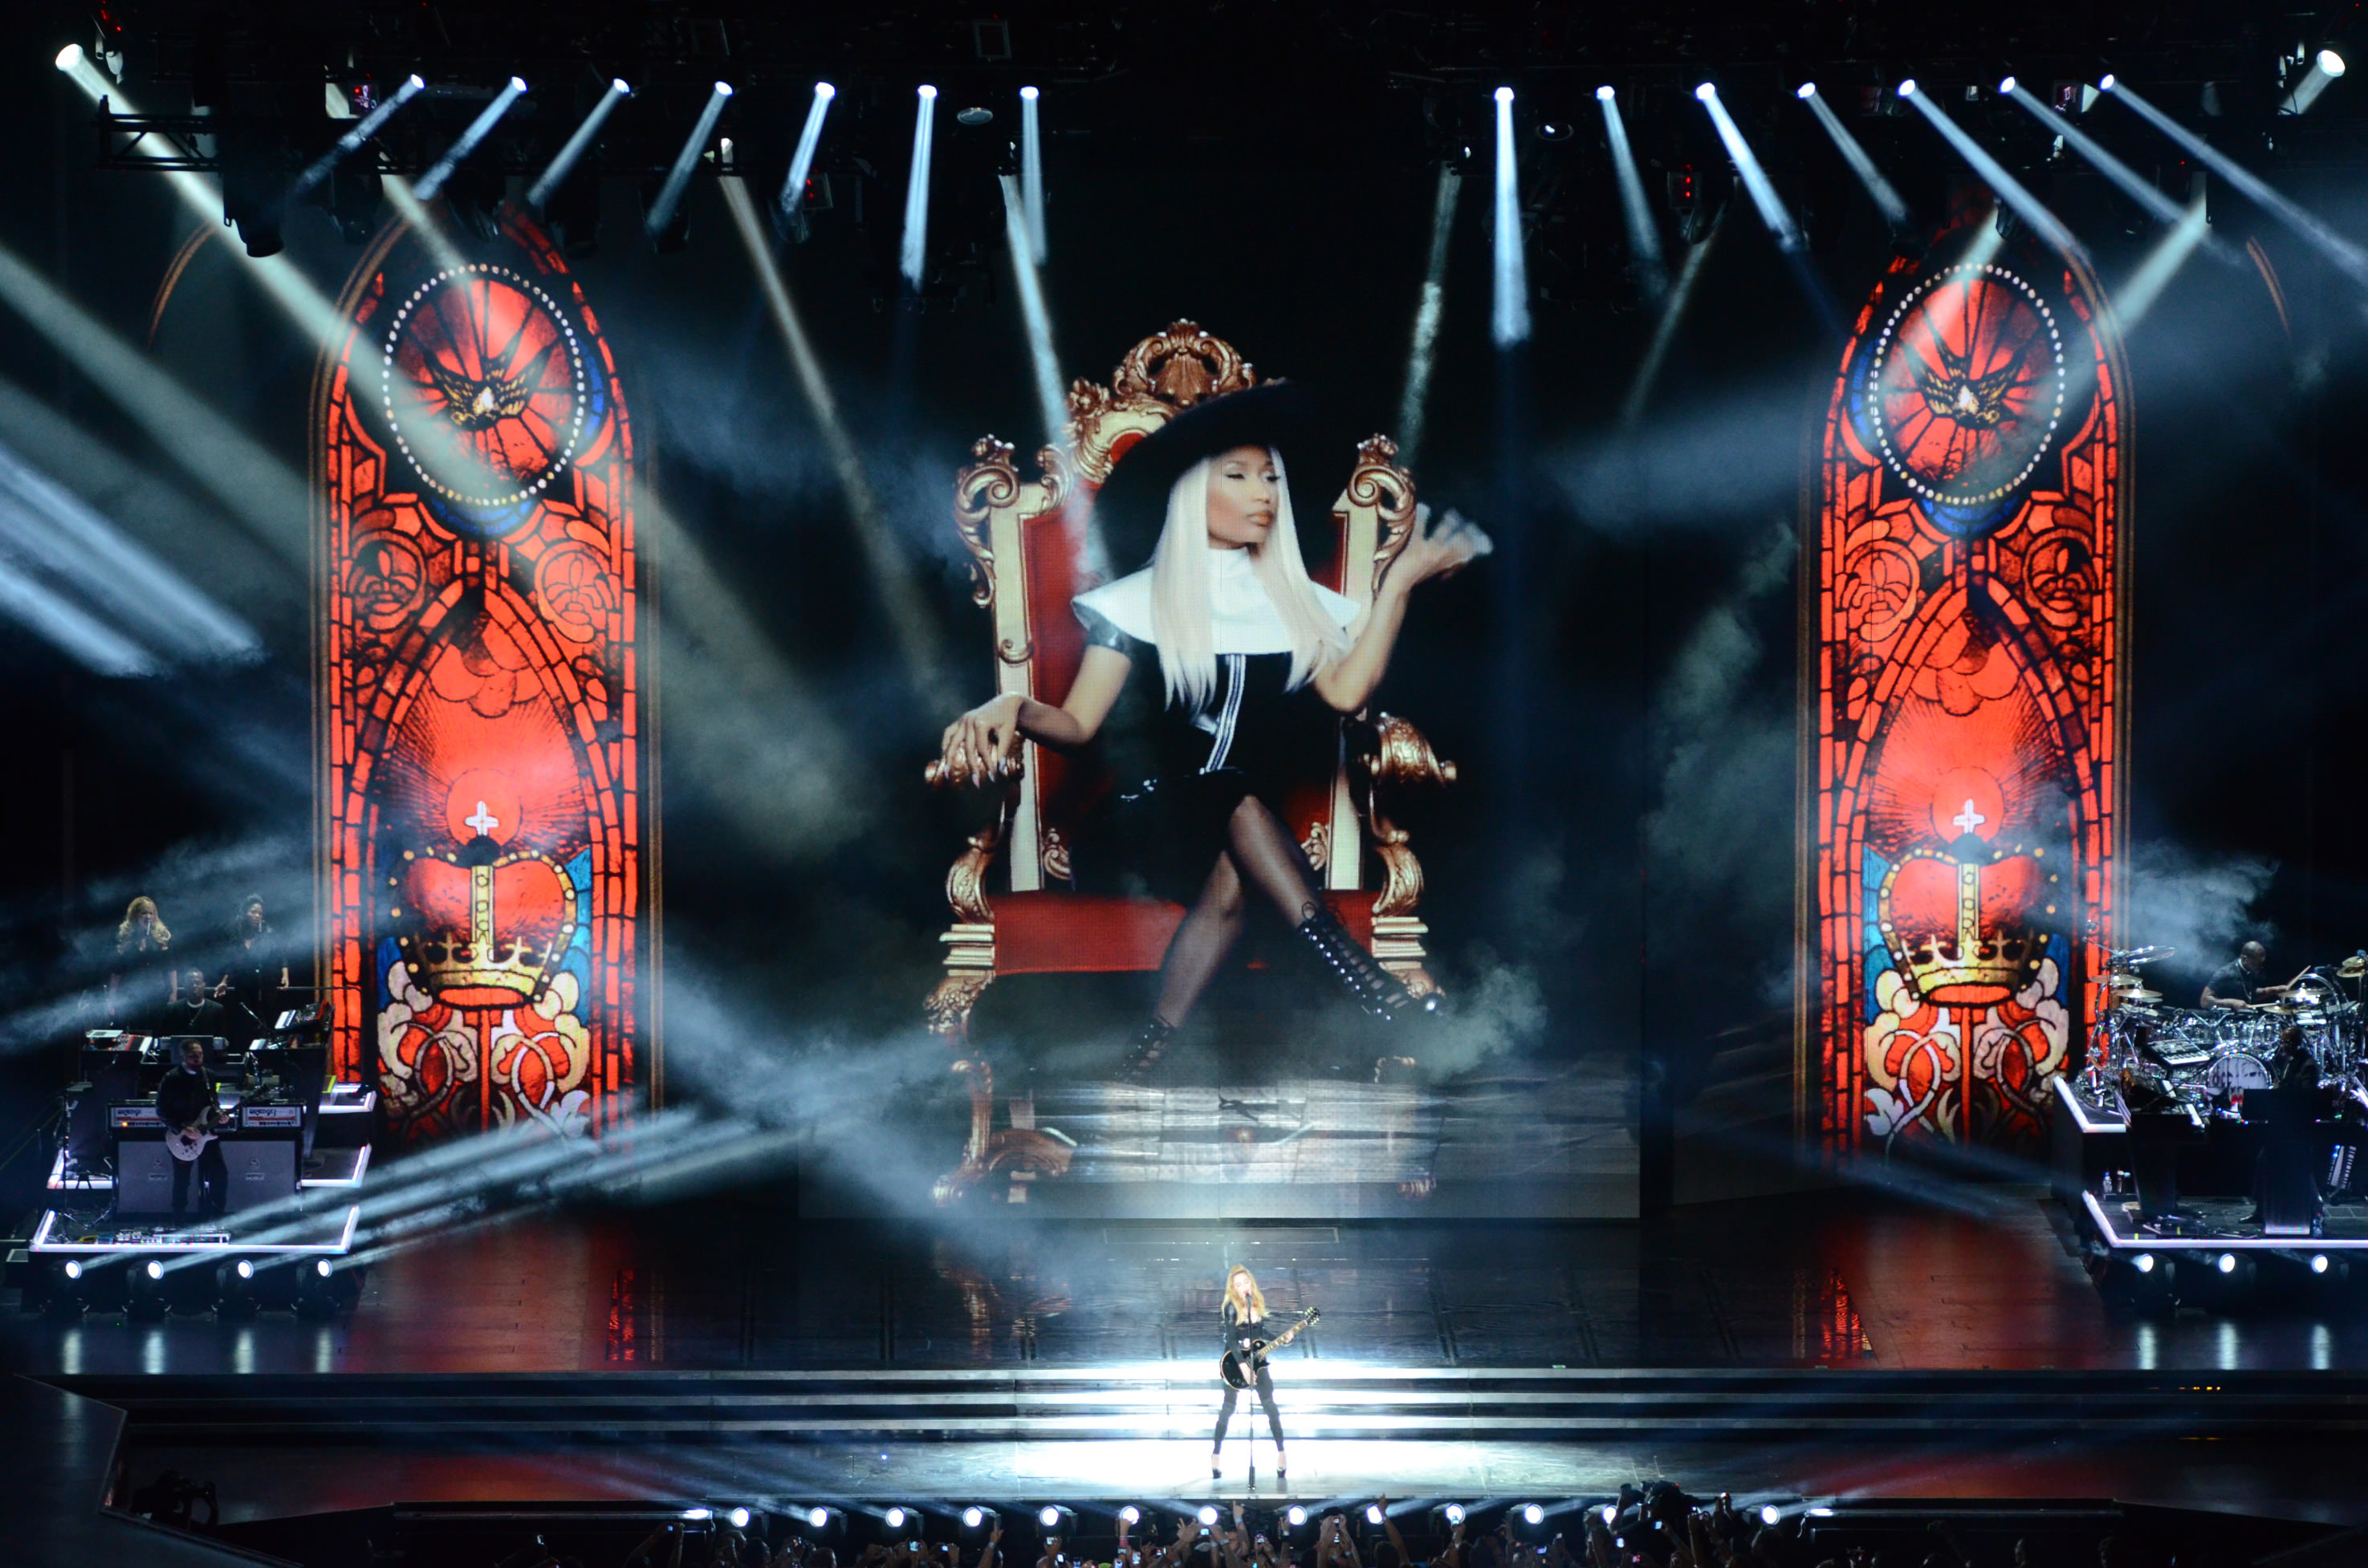 MDNA_Tour_2012_Live_Show_Content.jpg